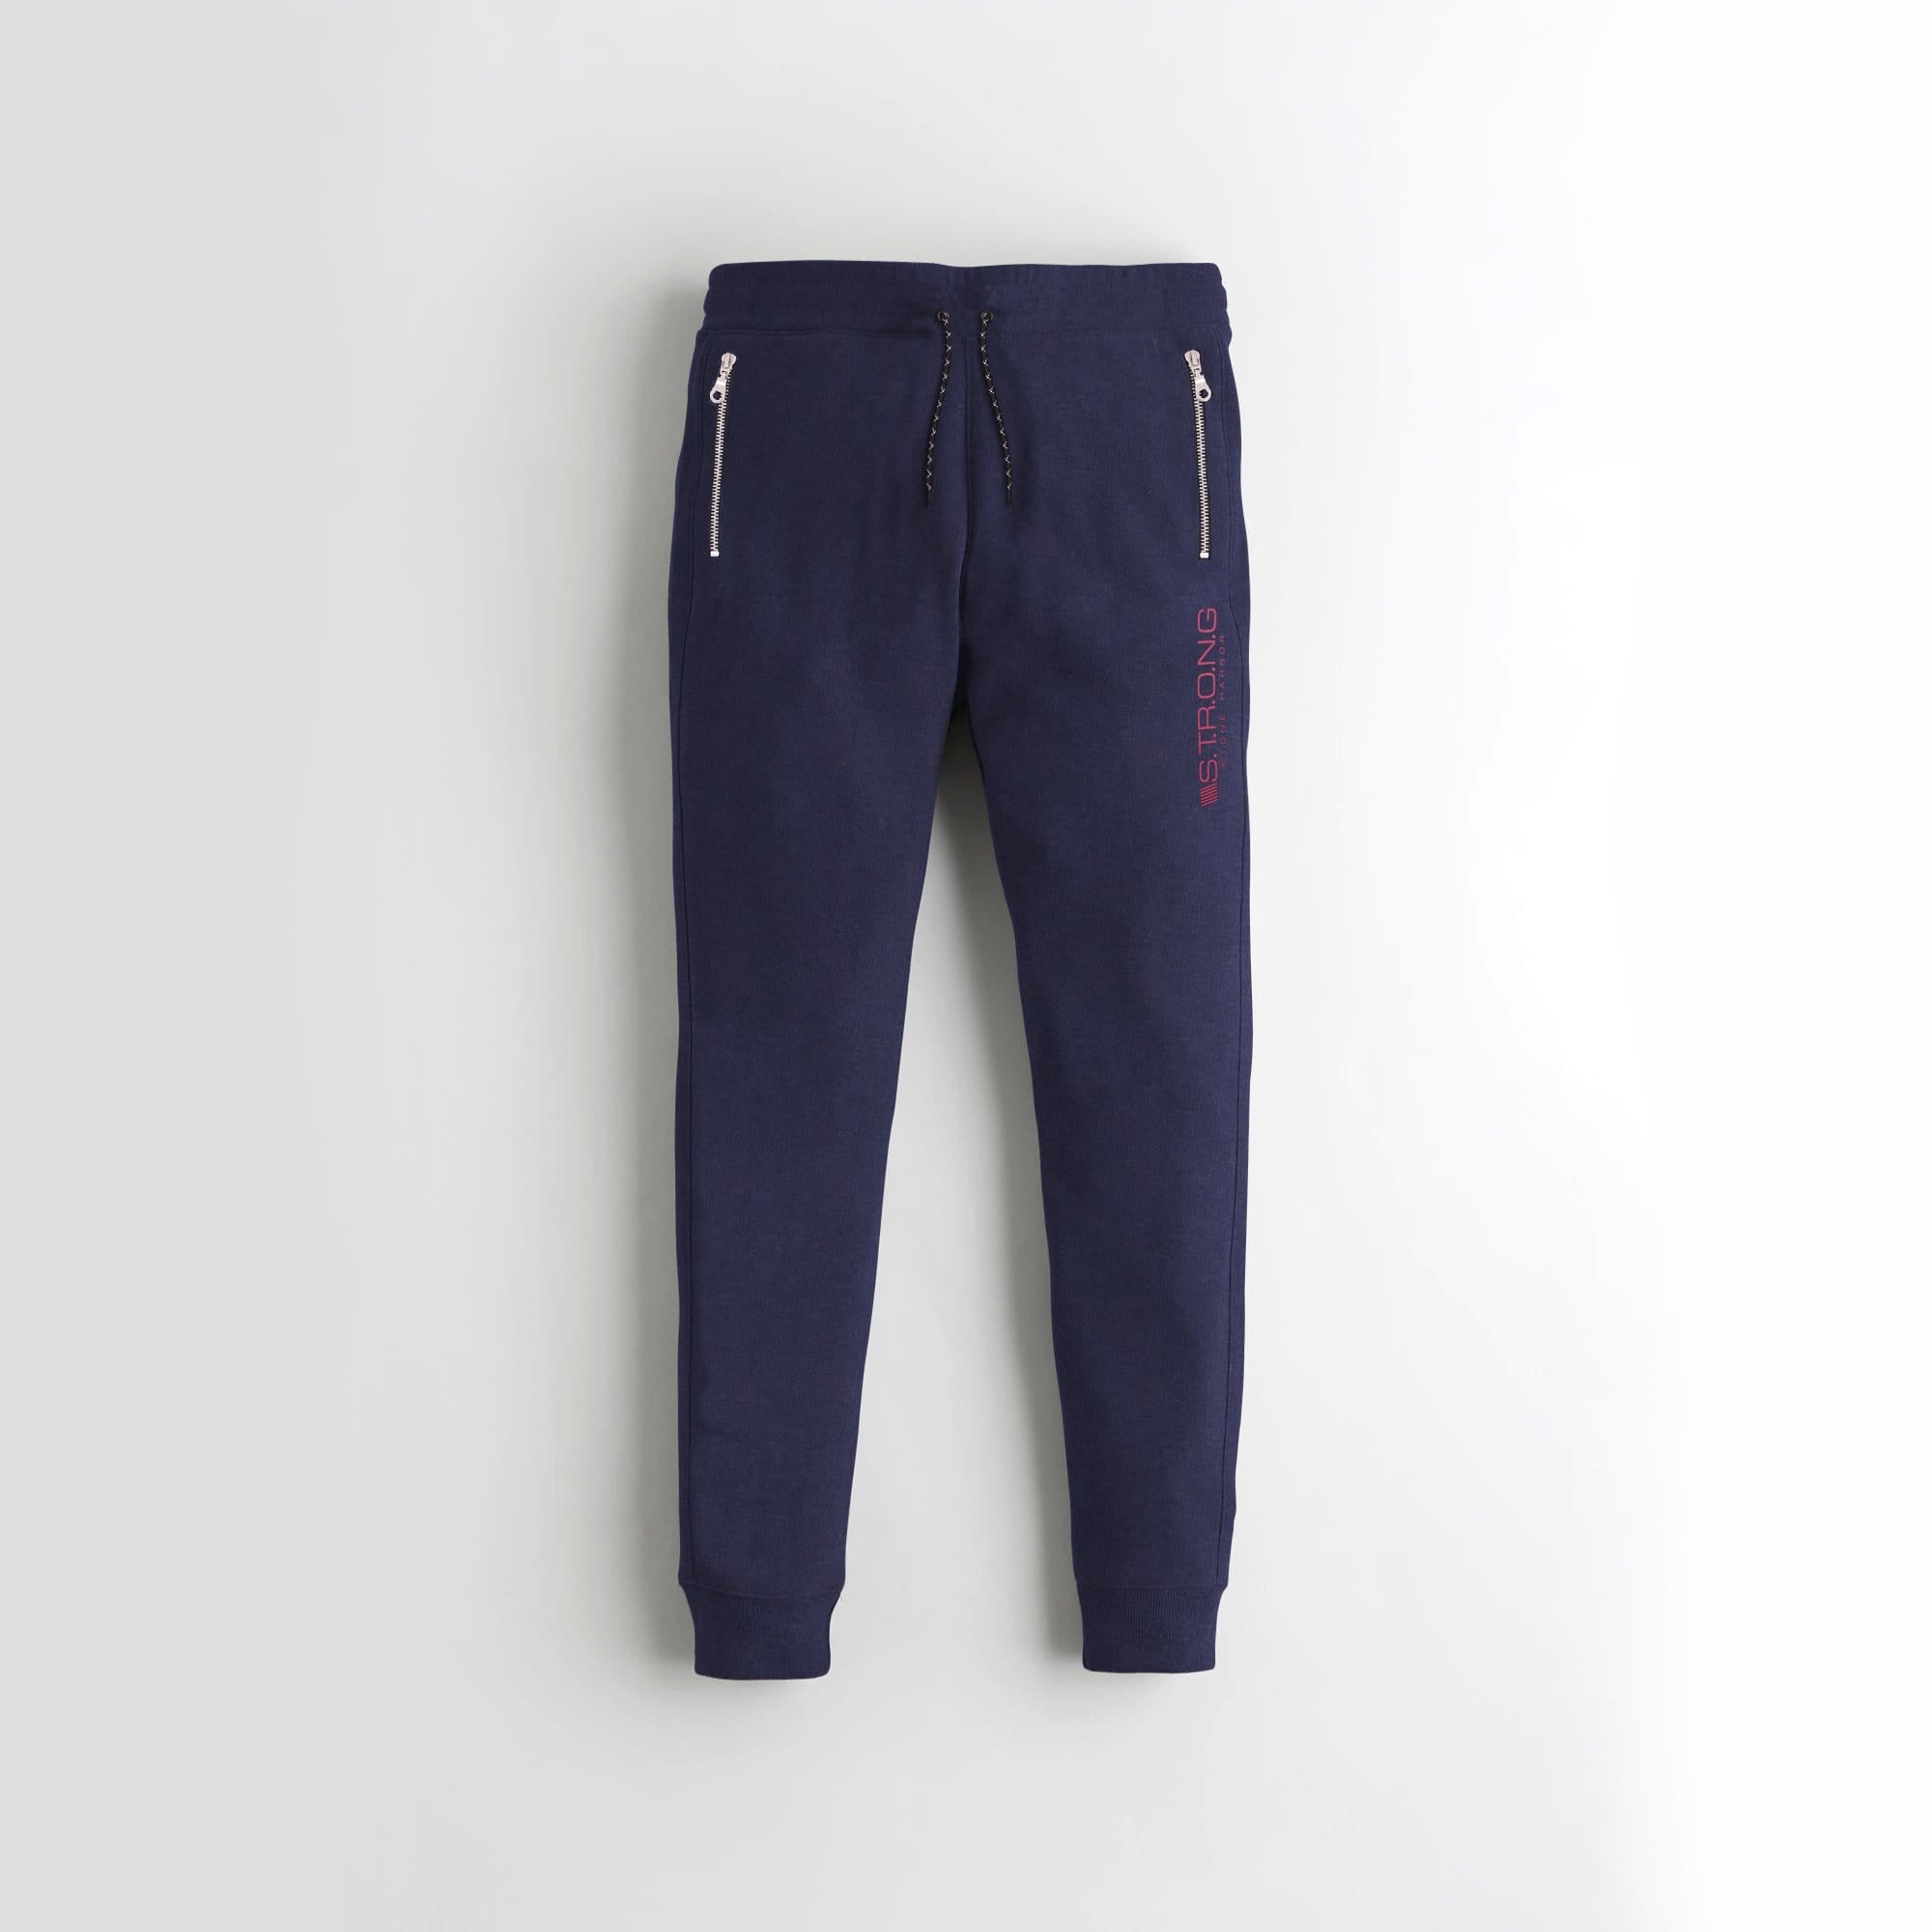 Stone Harbor Men's Sweat Pants Navy / S Men's Stone Harbor Bold Navy Sweat Pants